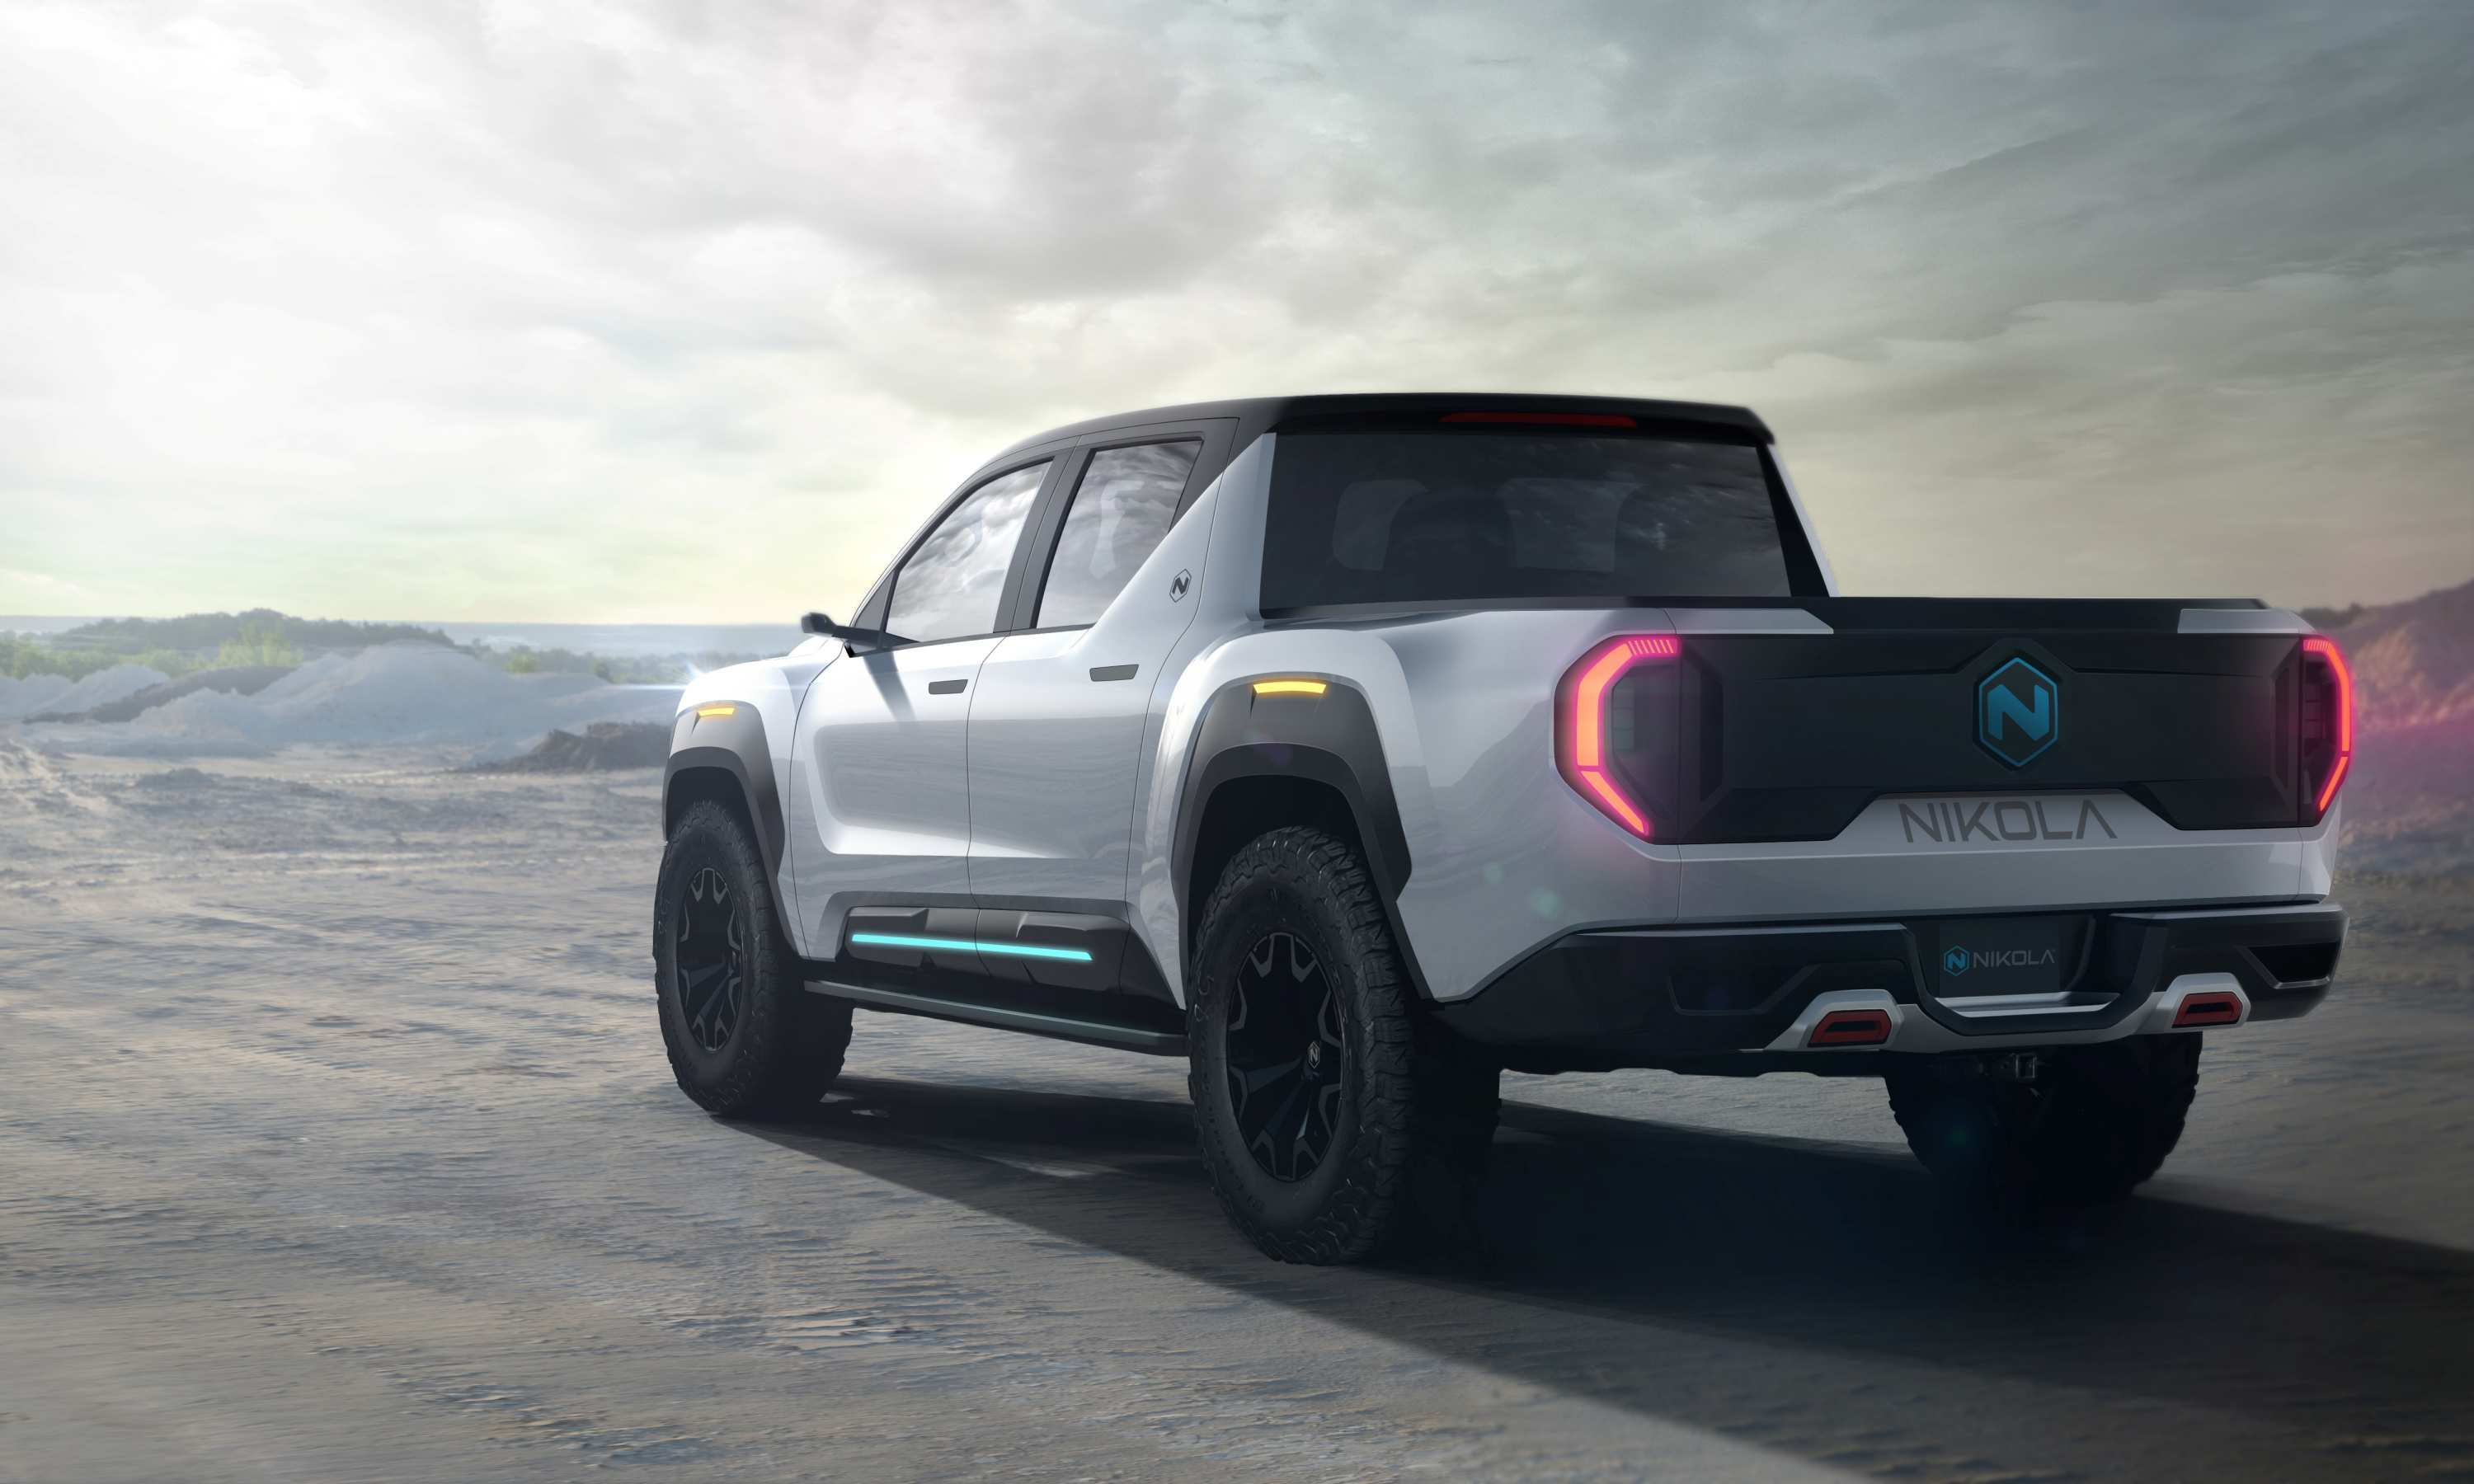 2020 Nikola Badger Electric Ute 5 exterior